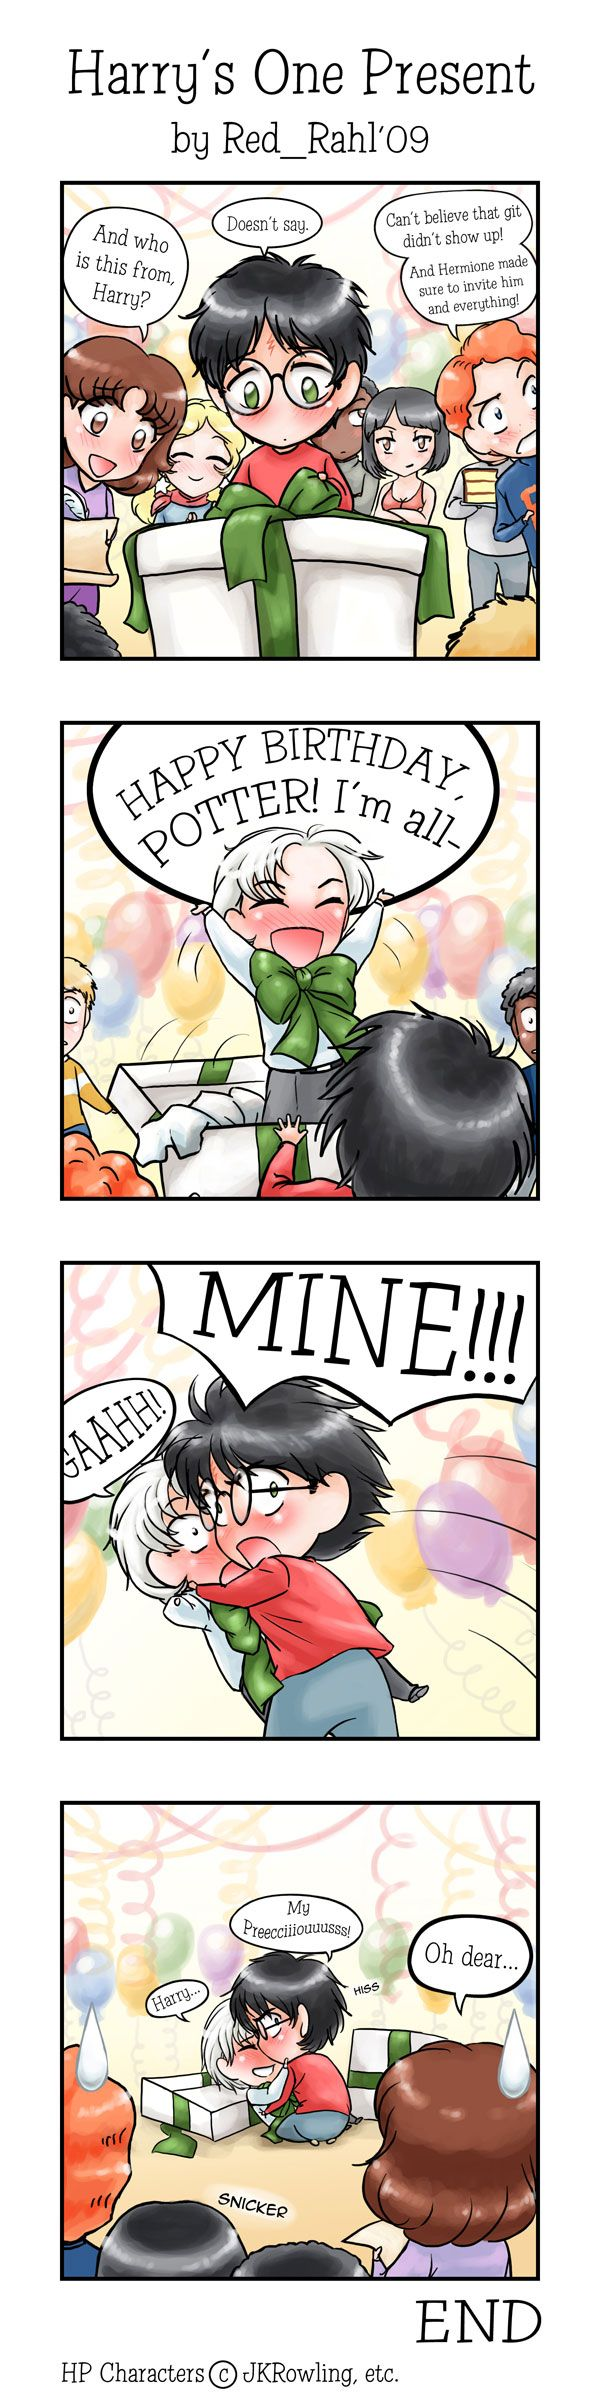 Chibi HD Comic: Harry's One Present (G) - Art on a Rampage!